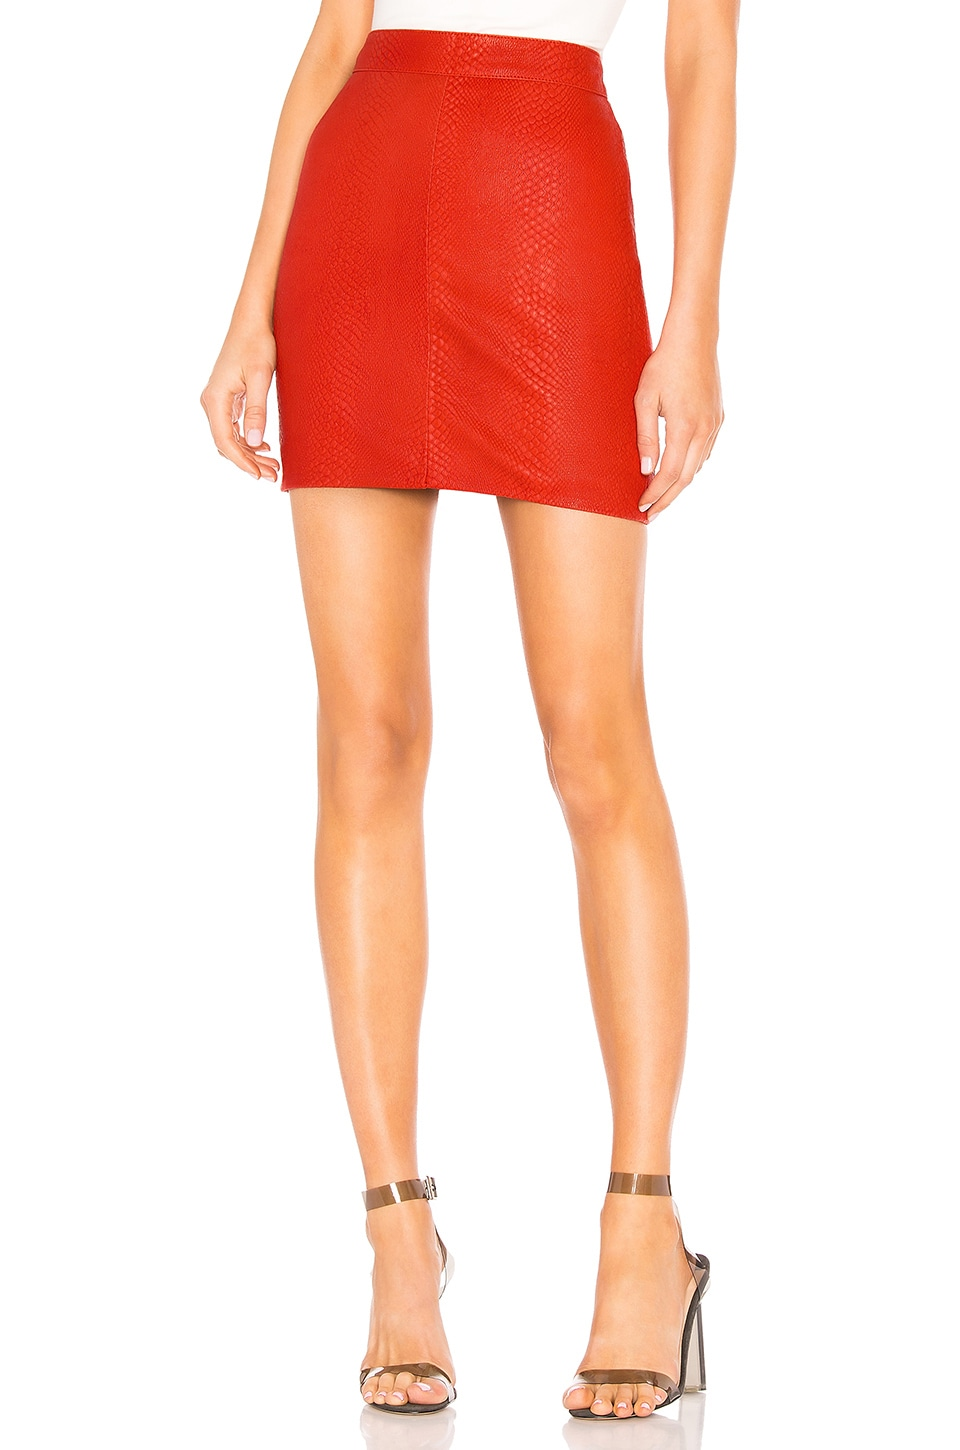 X by NBD Mishka Leather Mini Skirt in Red